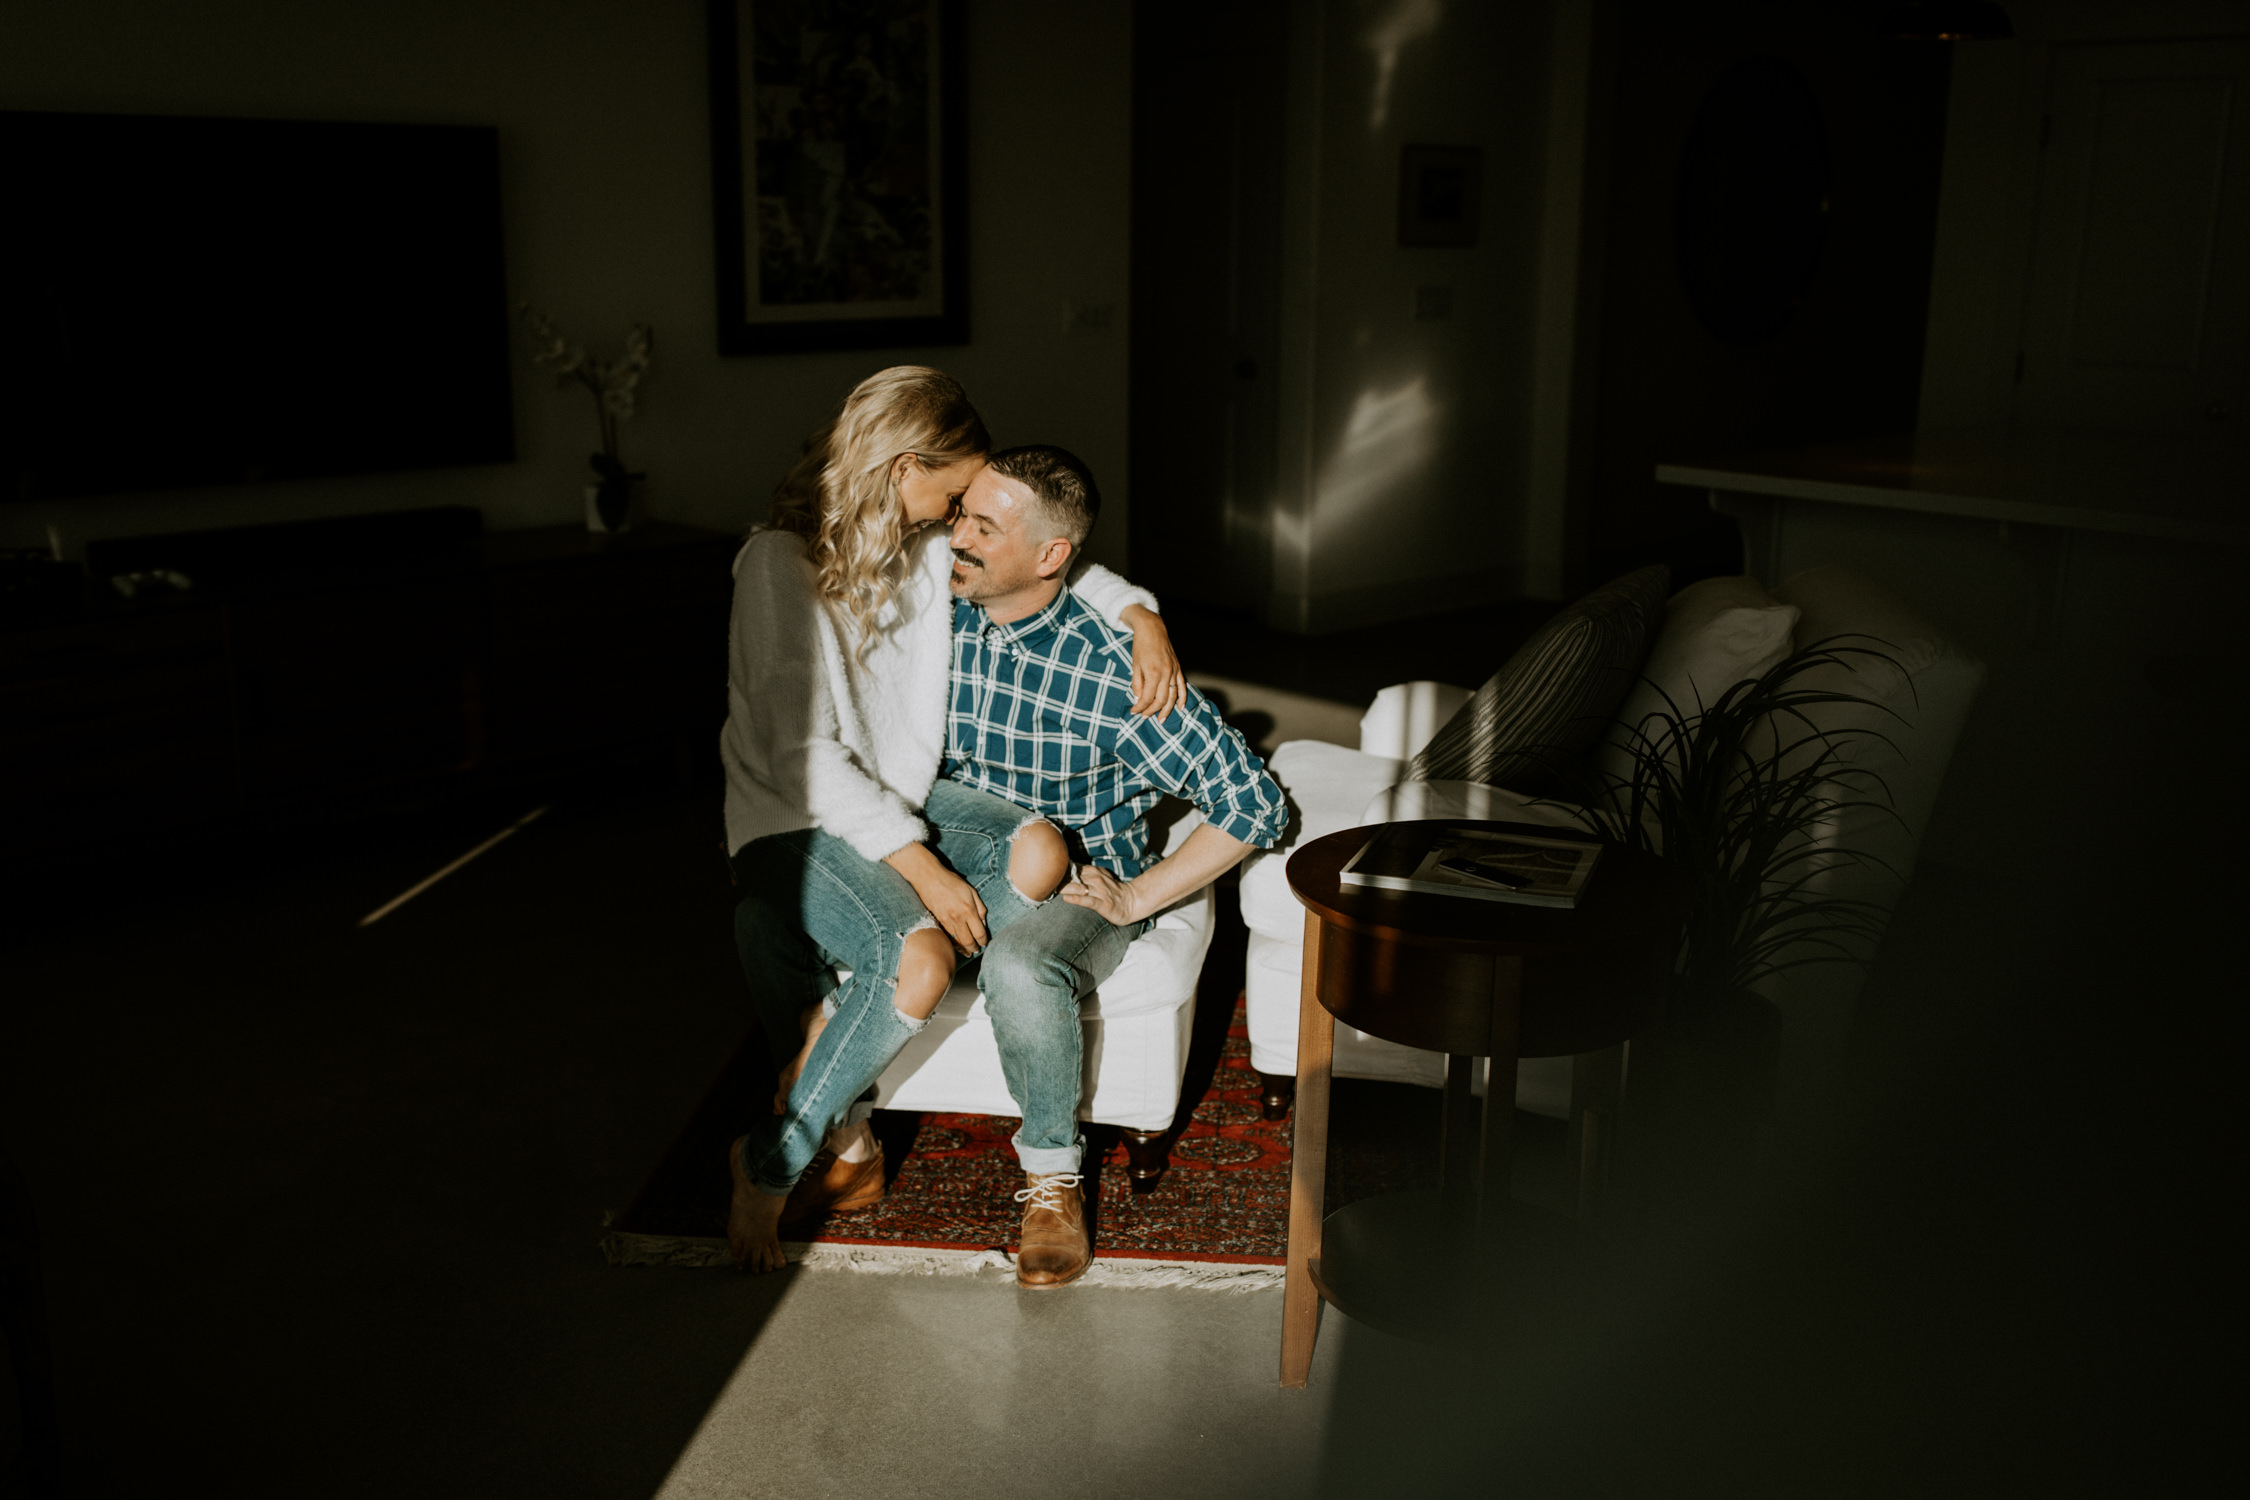 couple-intimate-in-home-session-northern-california-1.jpg